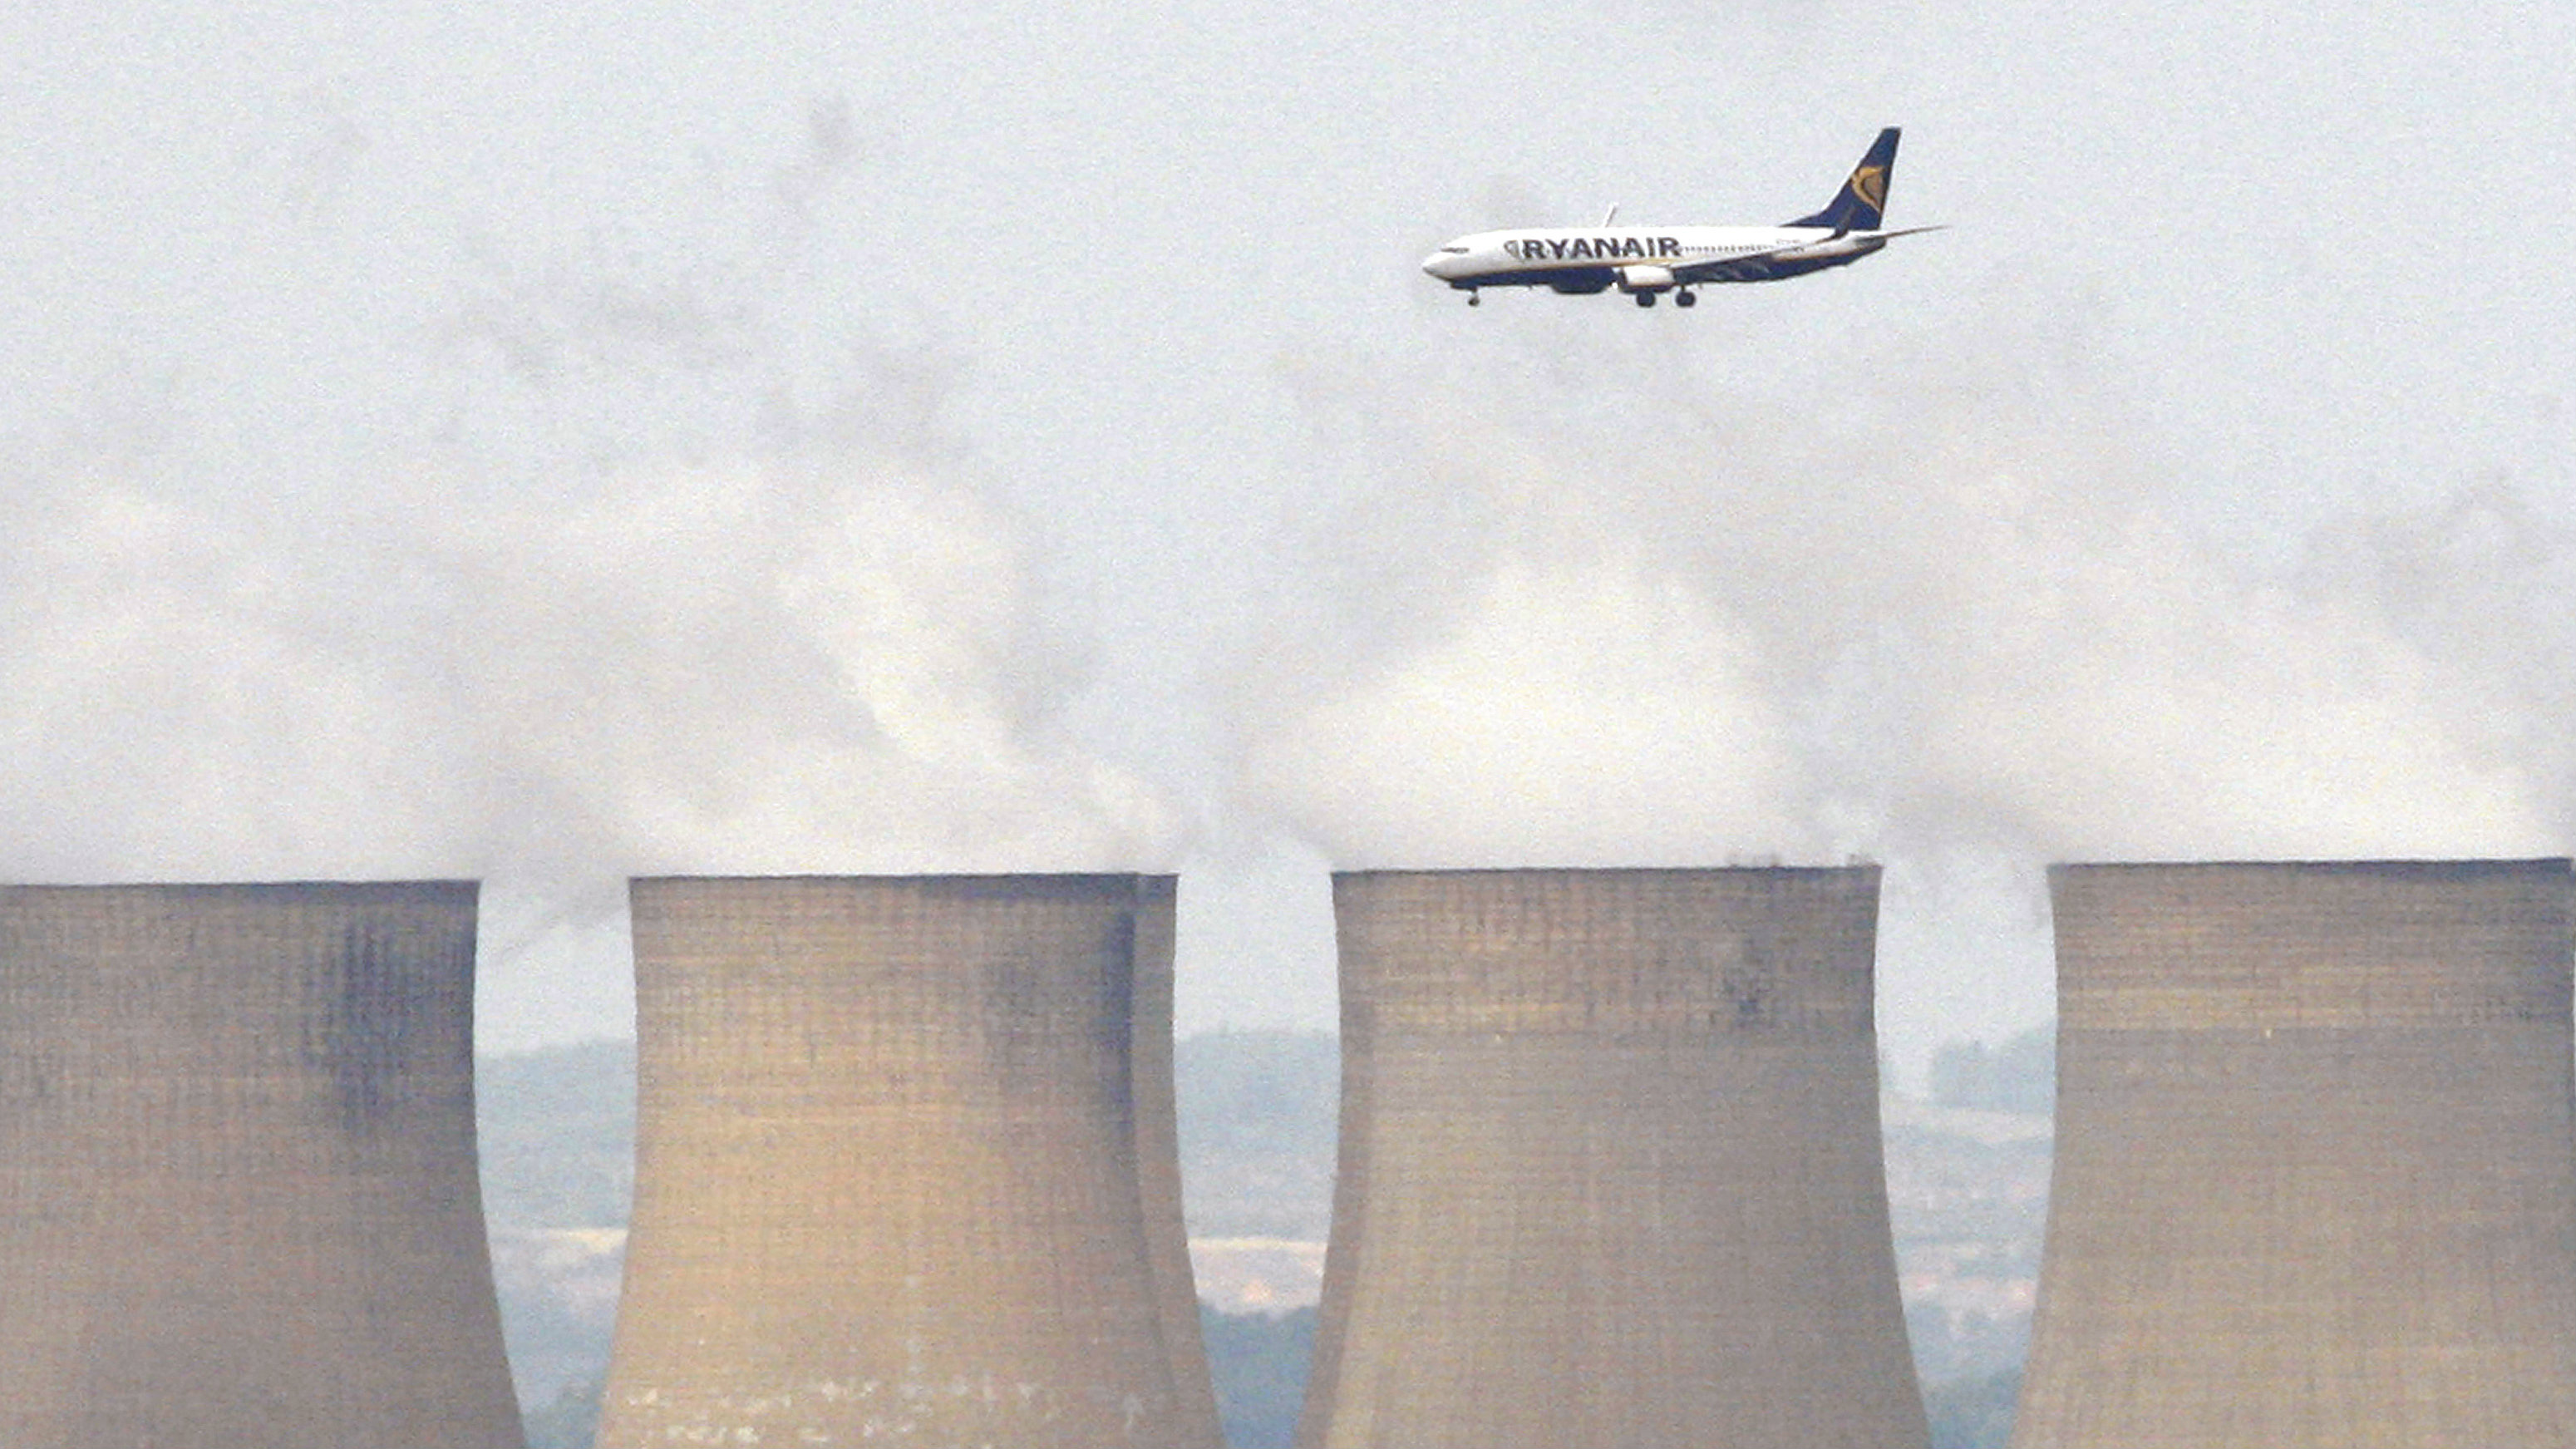 Ryanair flies over power station